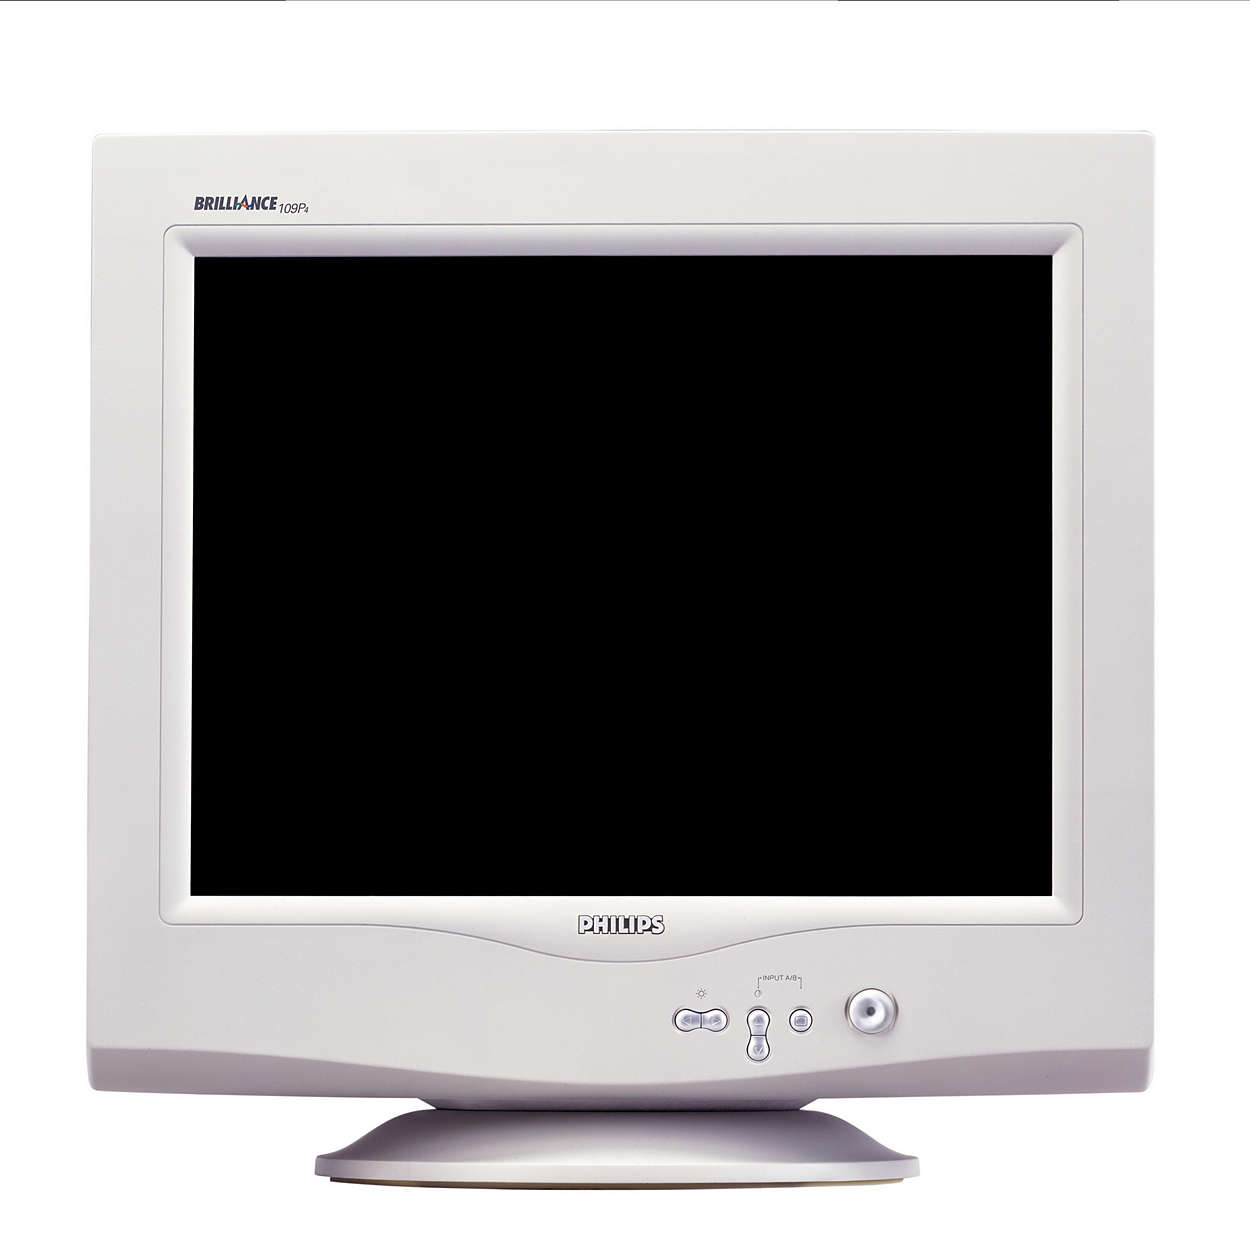 "professional 48 cm (19"") aperture grille display"